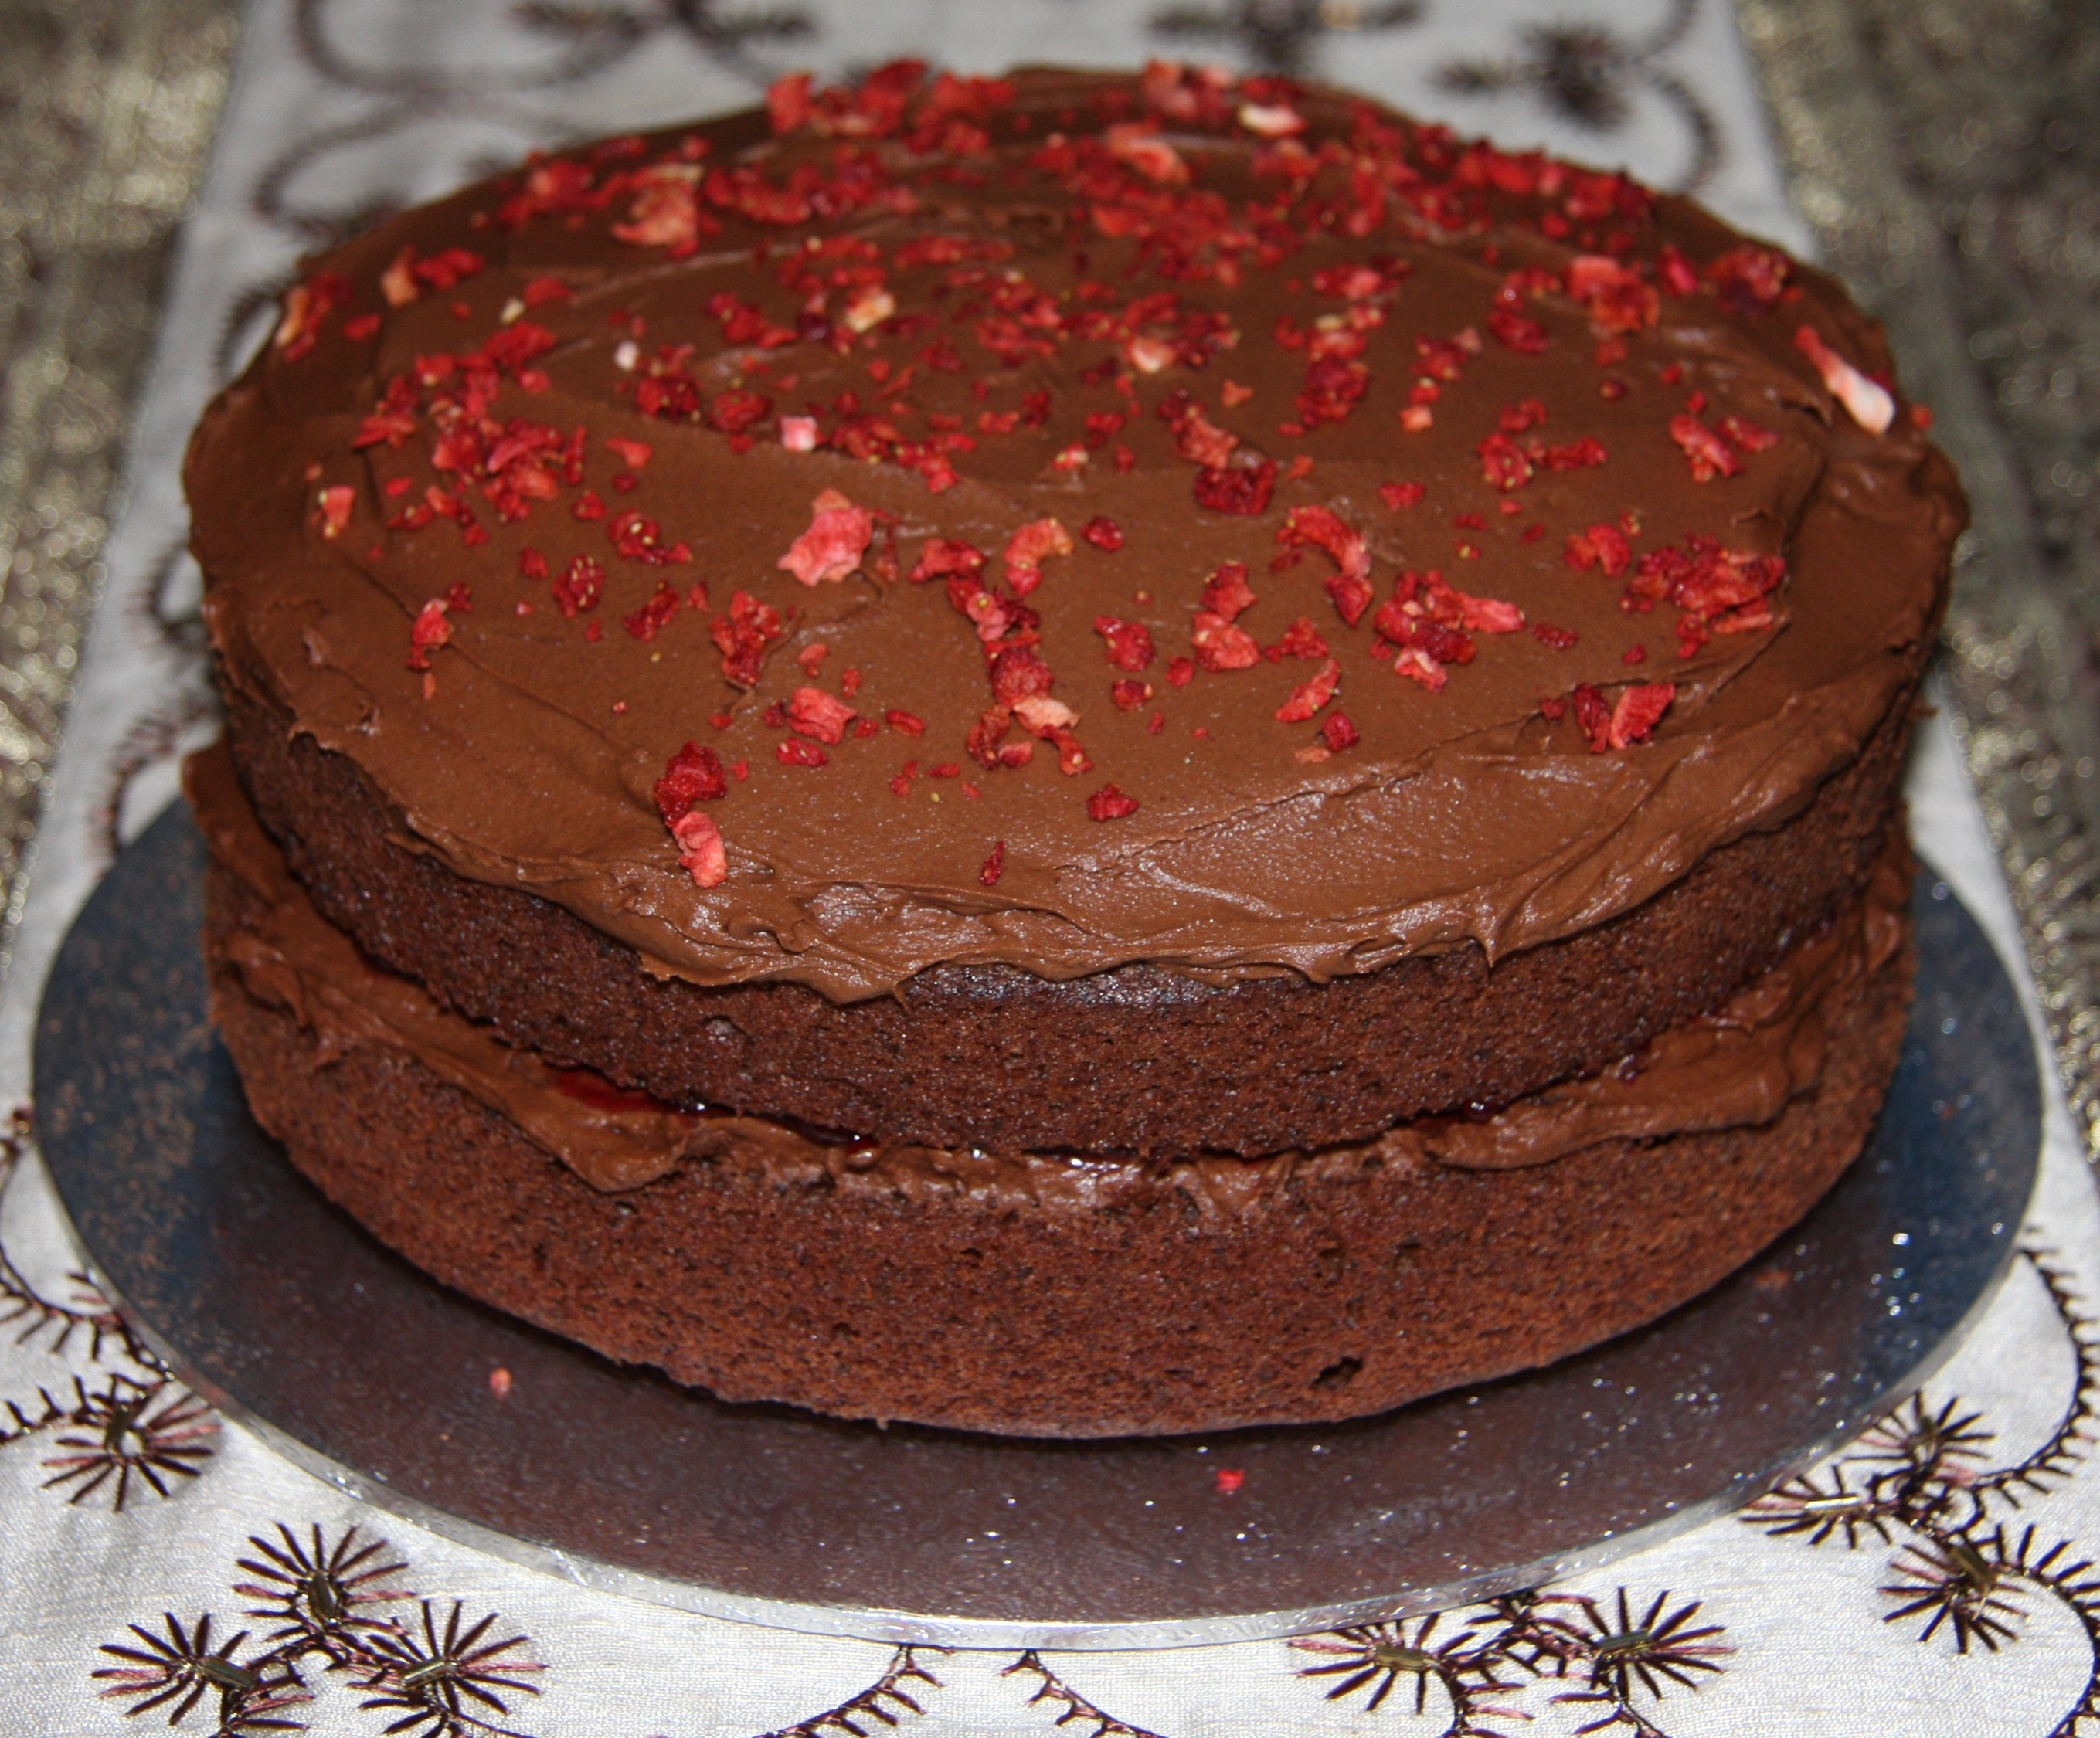 ... Chocolate Birthday Cake Recipe In Addition Chocolate Sponge Cake